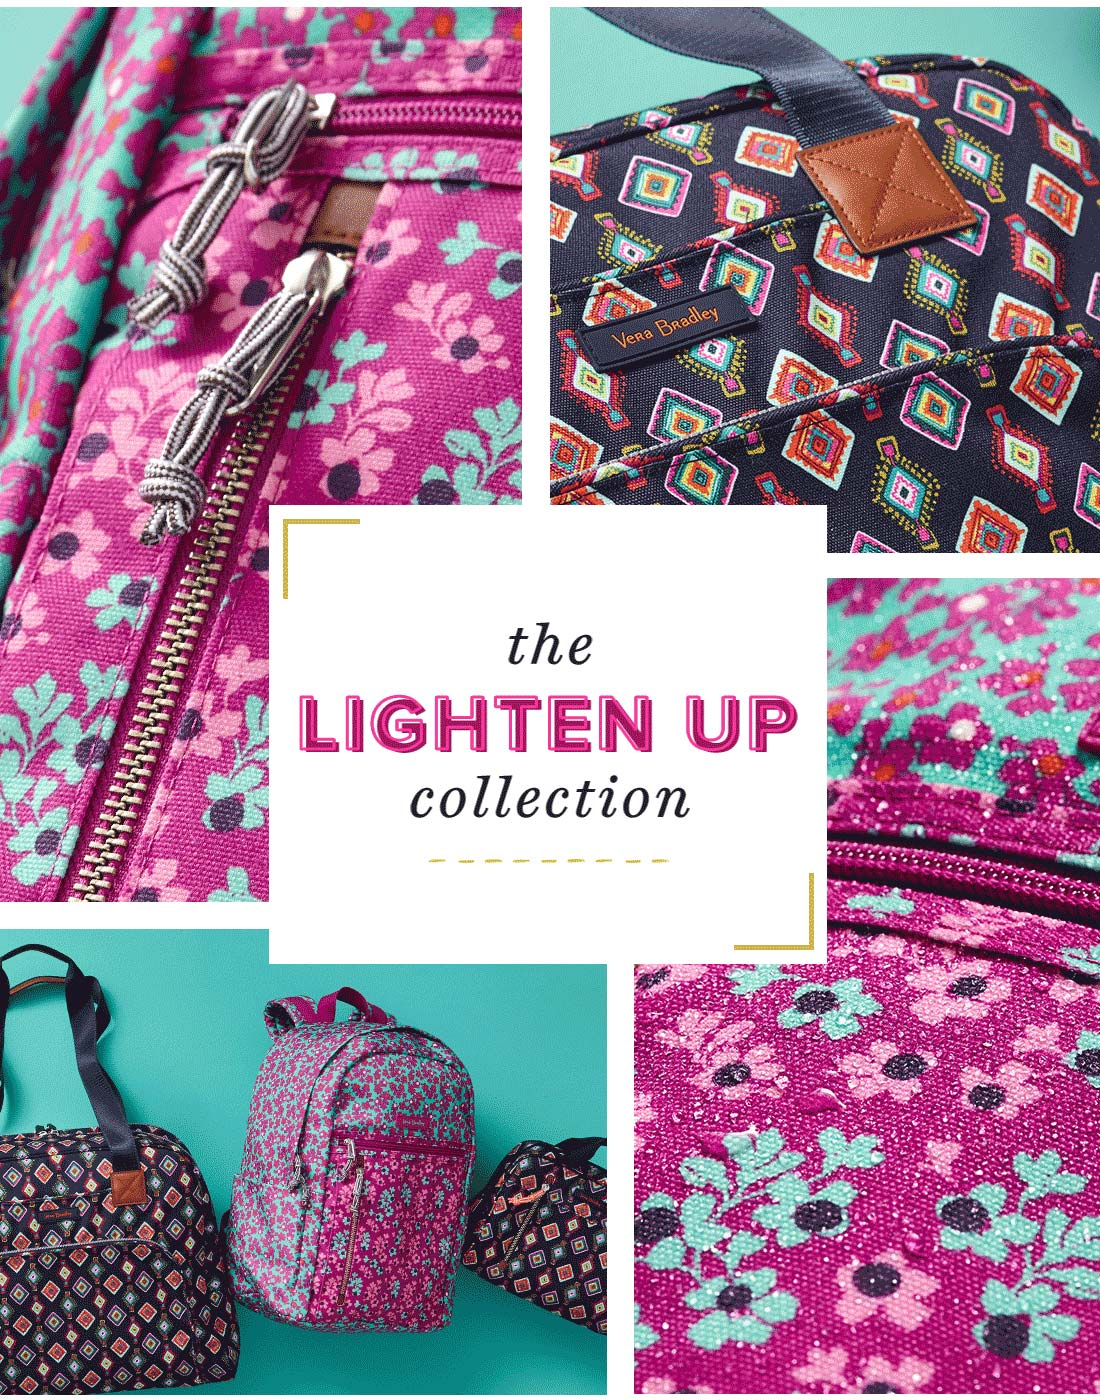 The Lighten Up Collection